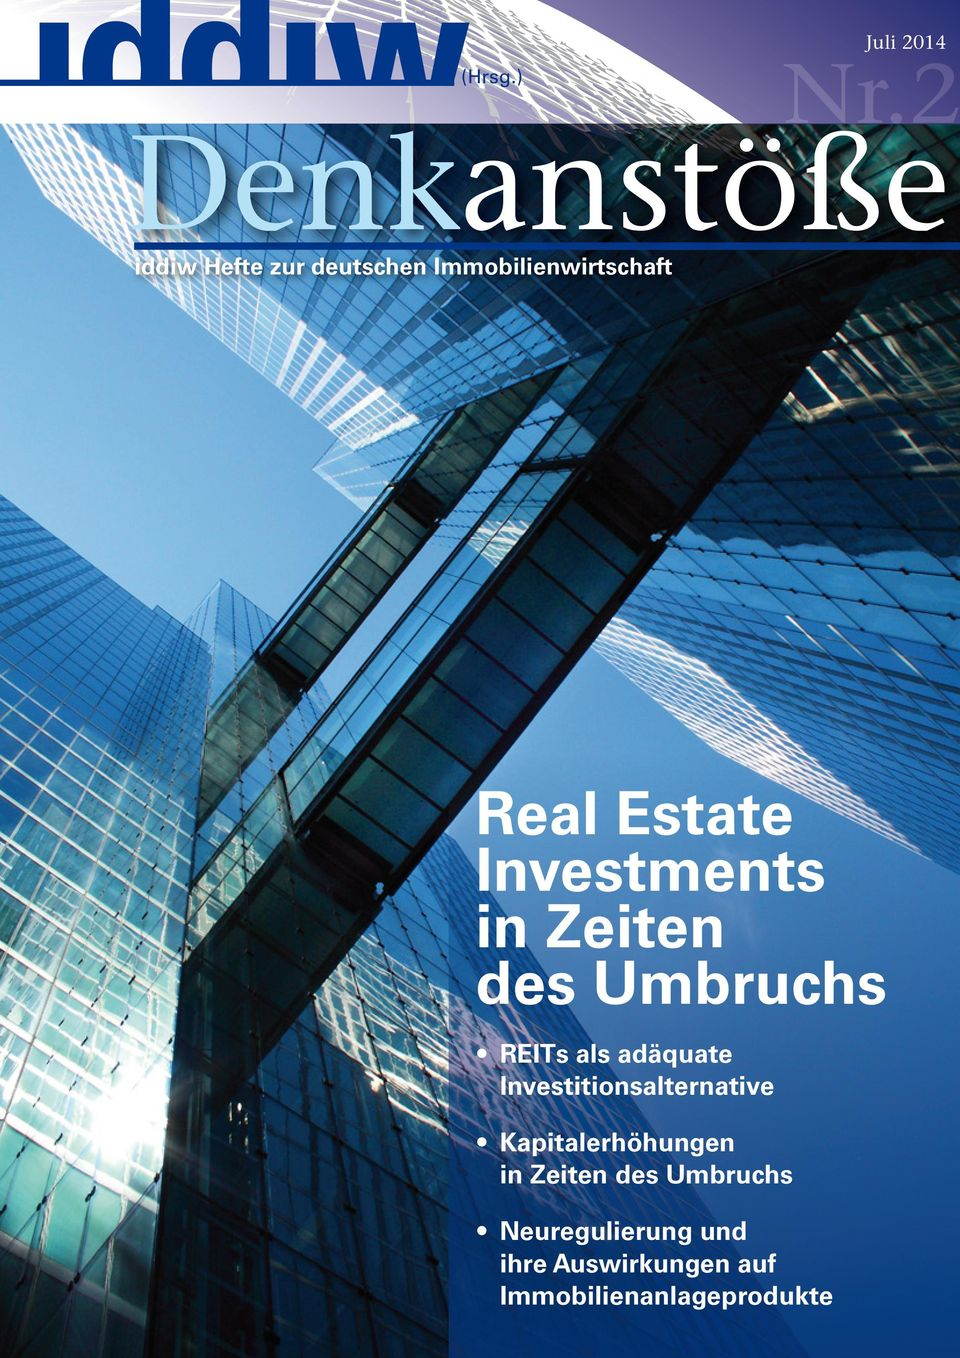 Estate Investments in Zeiten des Umbruchs REITs als adäquate